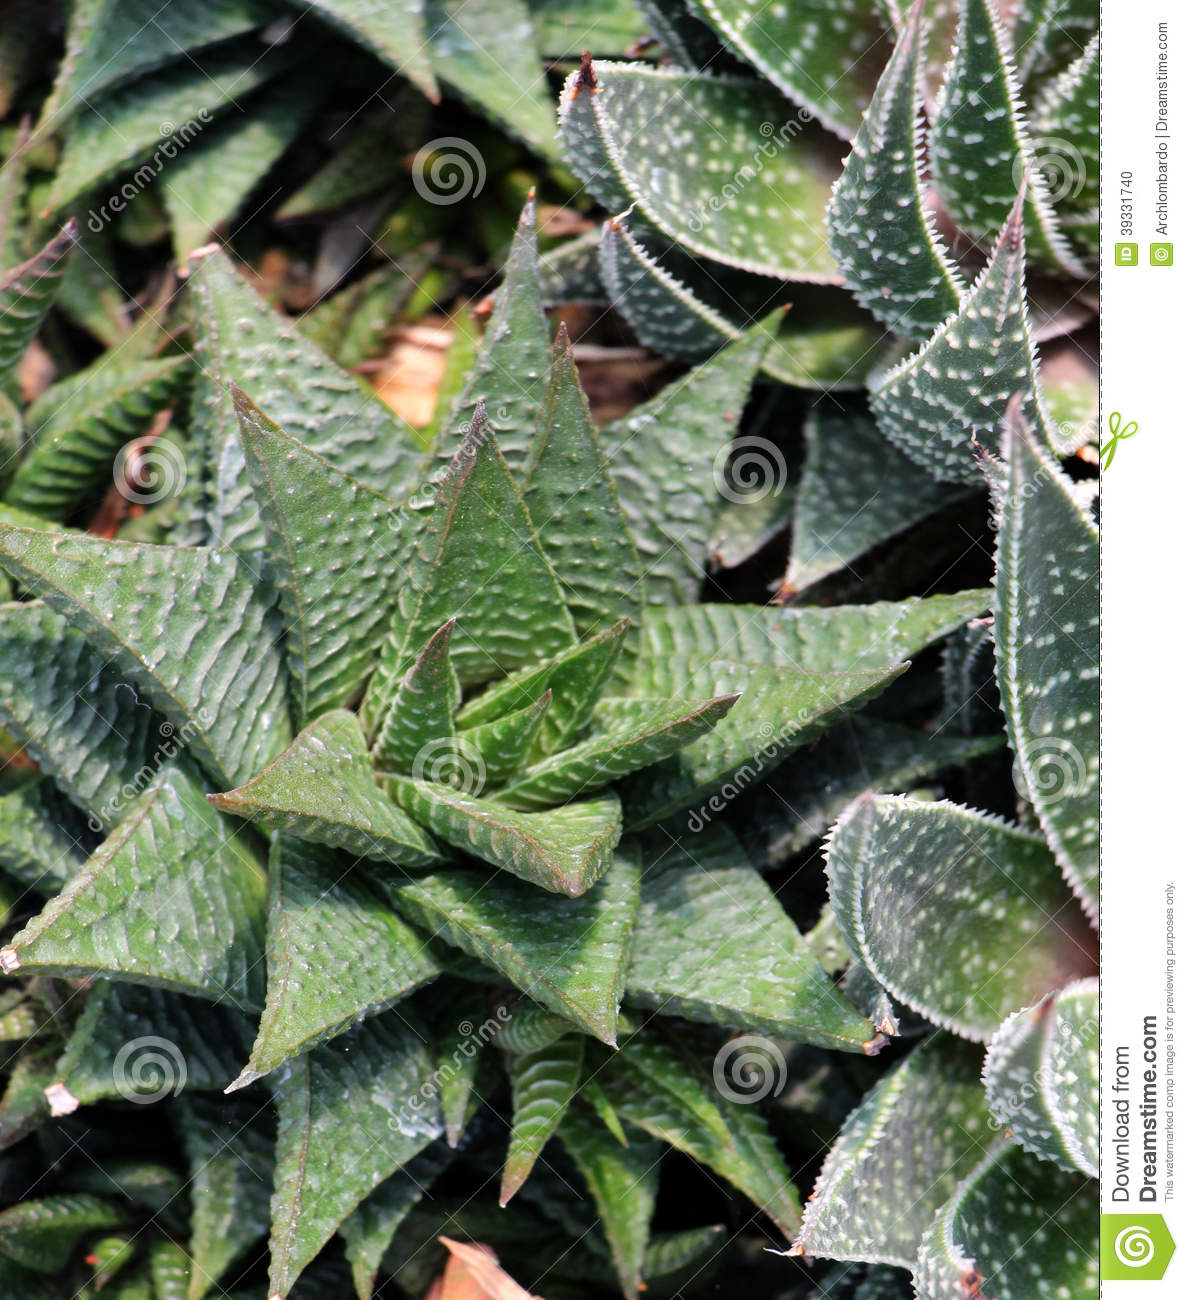 Nuance Decoration Leaves Of A Succulent, Detail Stock Photo - Image: 39331740